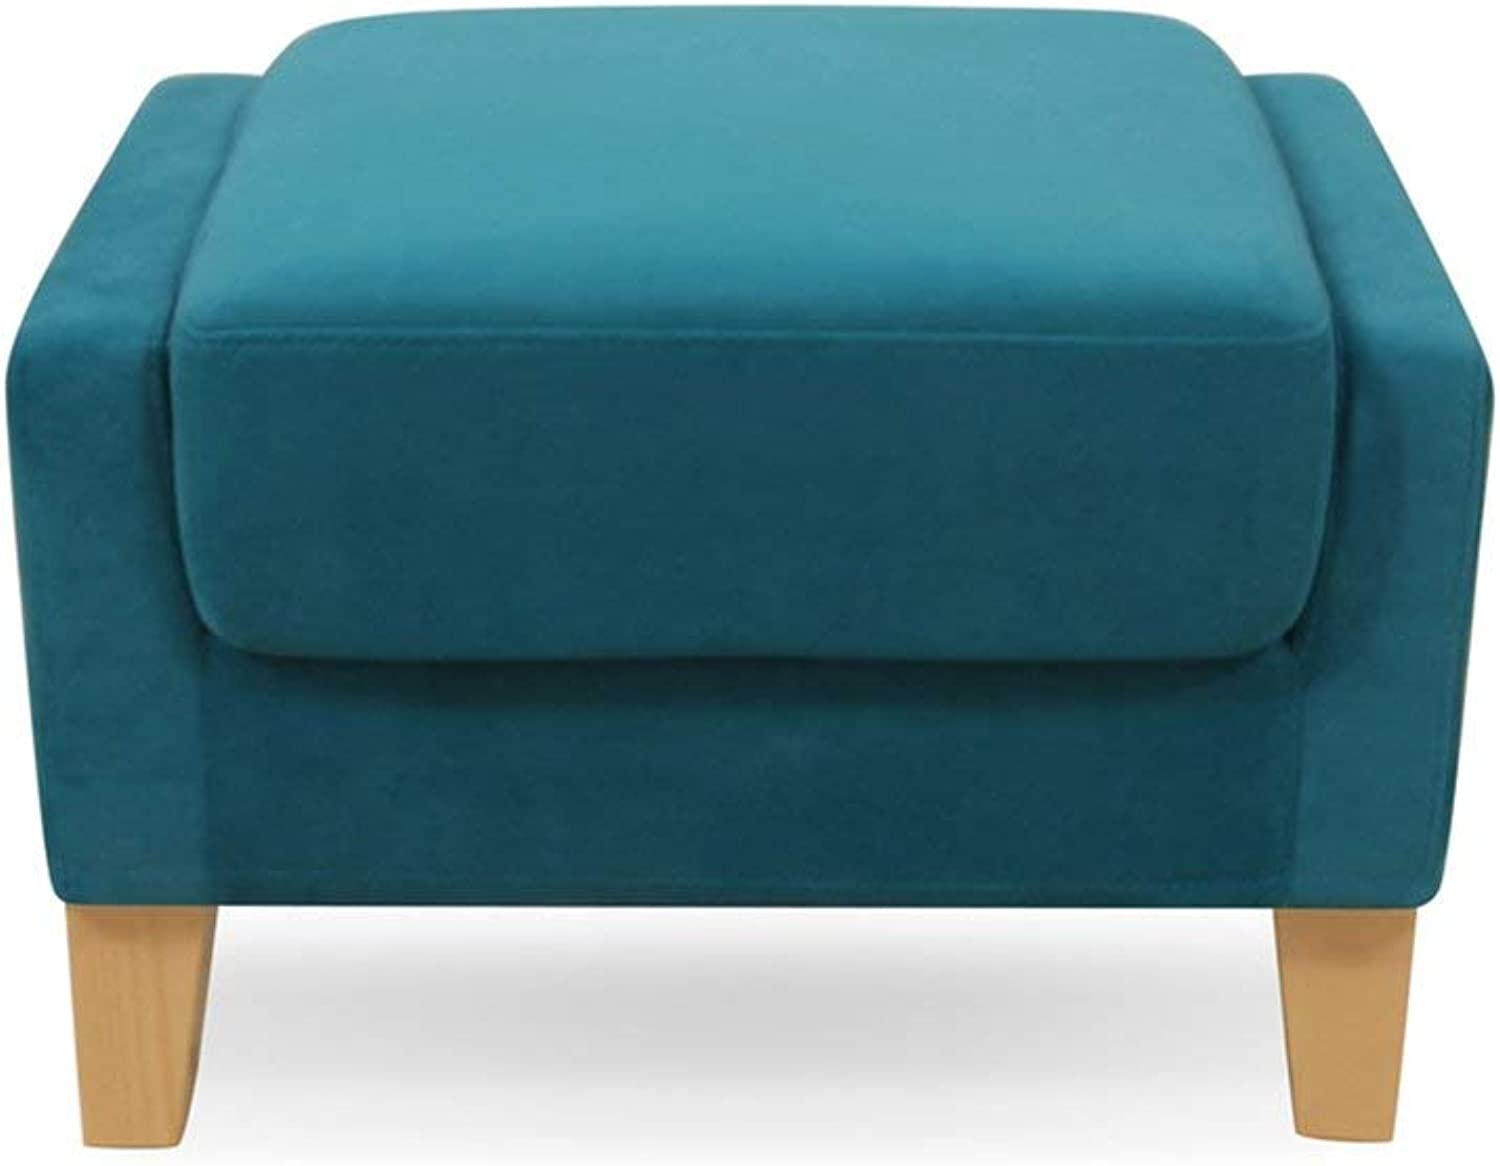 LUHEN Sofa Stool shoes Bench Modern and Simple Washable Cloth Art Small Sofa Stool Dressing Stool Low Stool 60cm Long Strong and Sturdy Foldable Leather Sofa Stool (color   bluee)